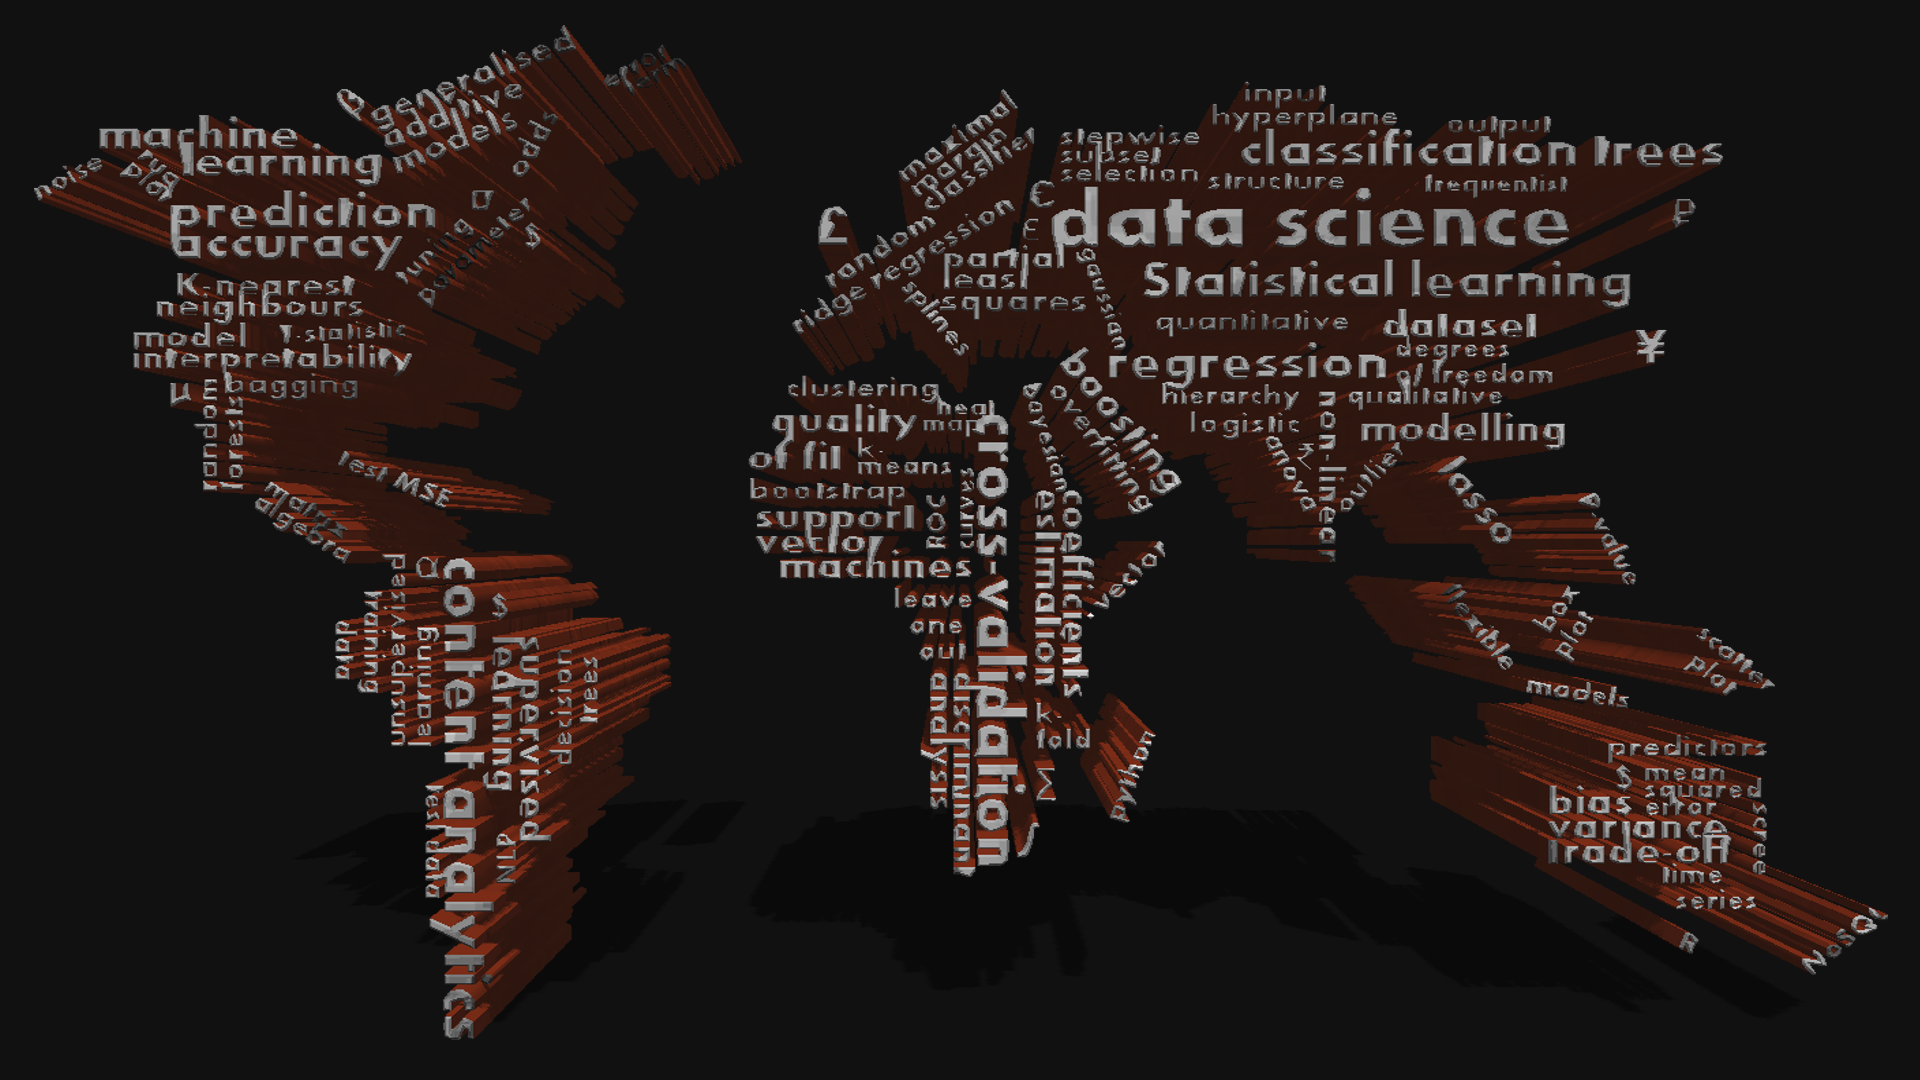 THE 10 DATA MINING TECHNIQUES DATA SCIENTISTS NEED FOR THEIR TOOLBOX